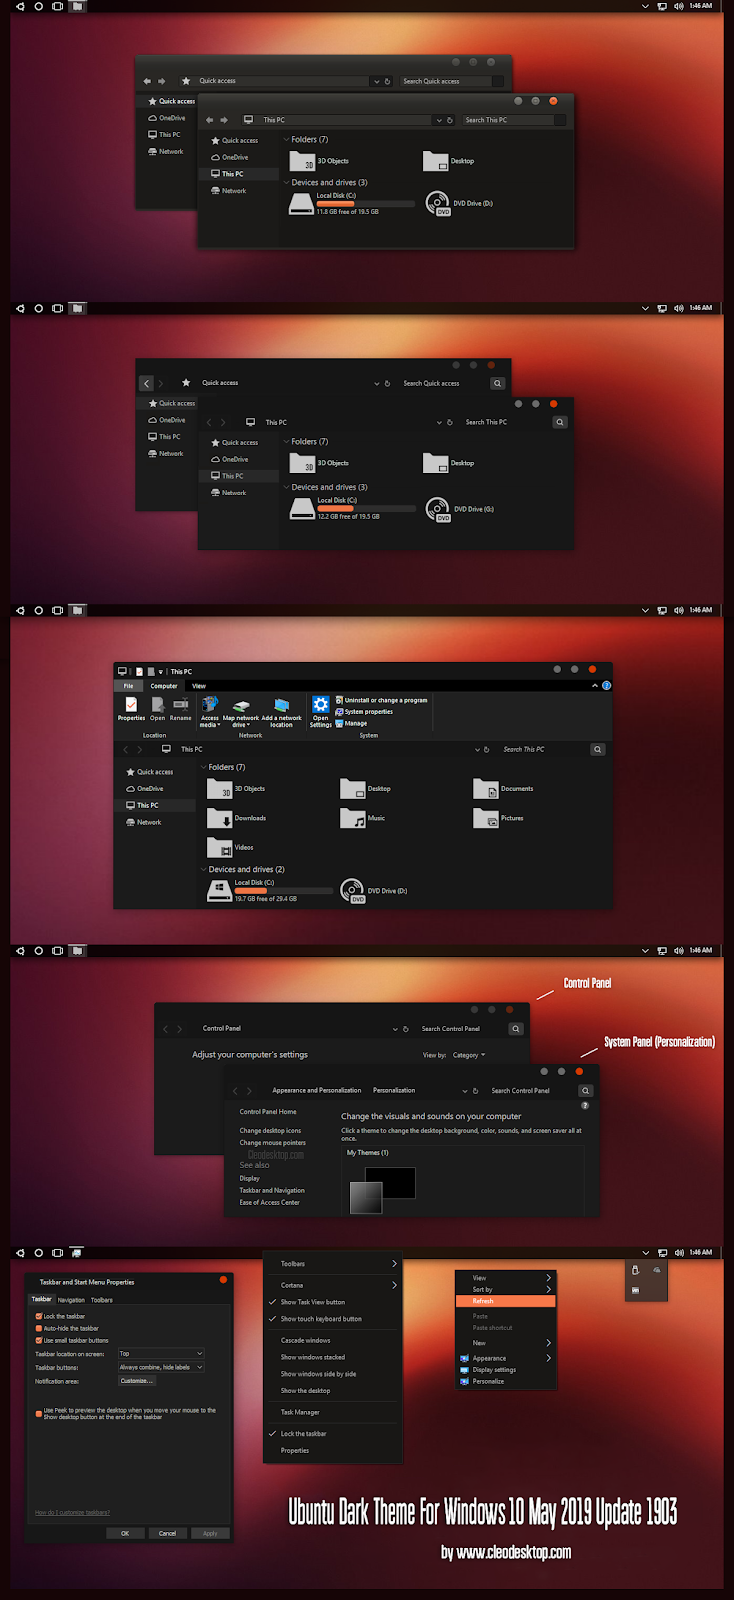 Ubuntu Dark Theme For Windows10 May 2019 Update 1903